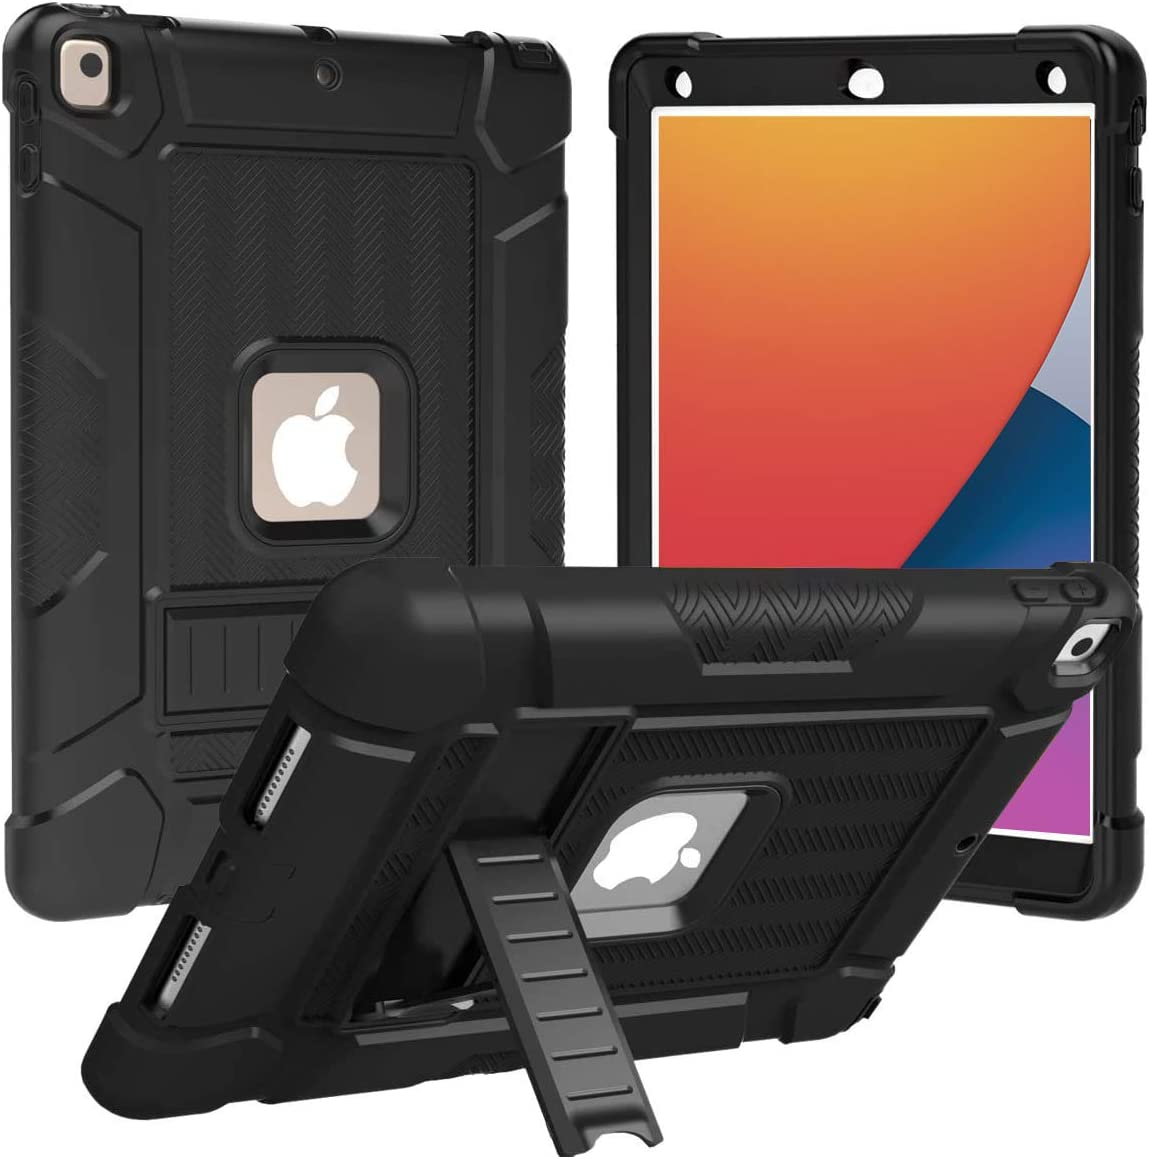 BMOUO Case for iPad 10.2 2020/2019, iPad 8th/7th Generation Case, Shockproof Heavy Duty Rugged Protective Slim Case with Kickstand for iPad 8th/7th Gen 10.2 inch 2020 - Black and Black